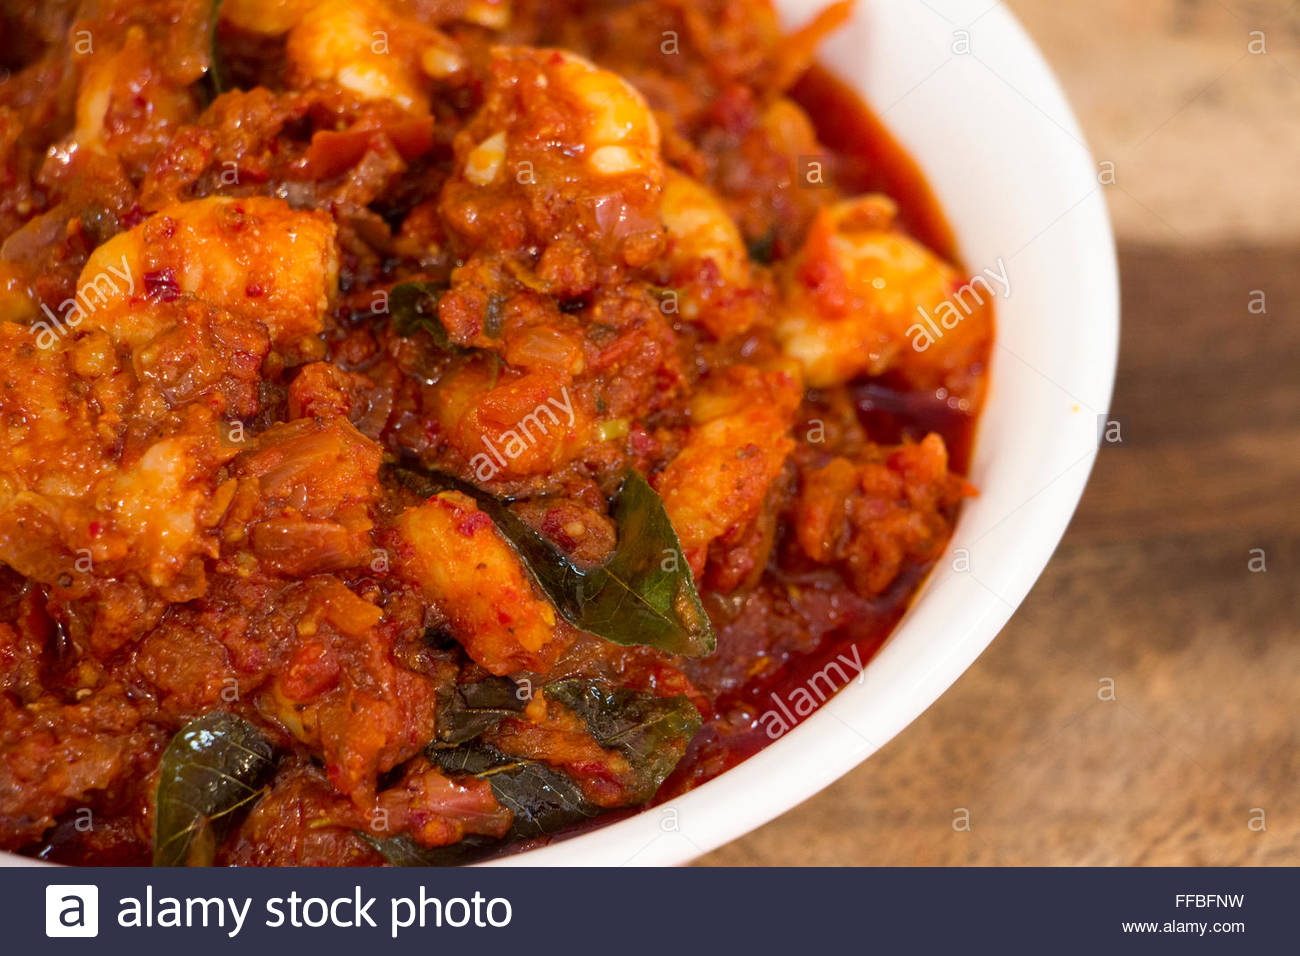 Prawn balchao is a goan style pickle which is made from prawns are cooked in tangy and spicy gravy and this can - Stock Image